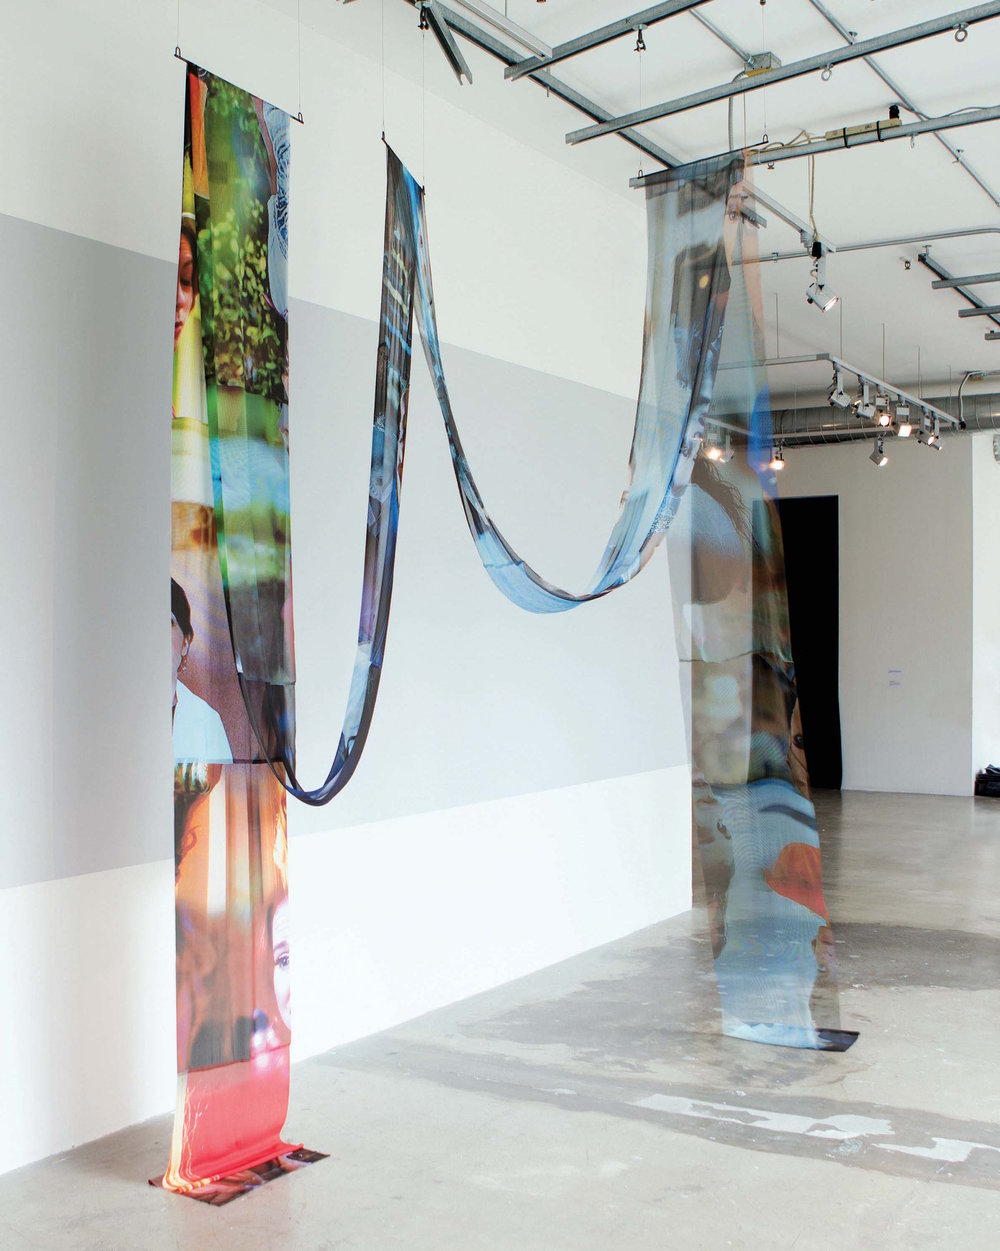 Shannon Crider, TV Guides (Installation View), 2016, Digitally printed sheer fabric, 576 x 18 inches, dimensions variable